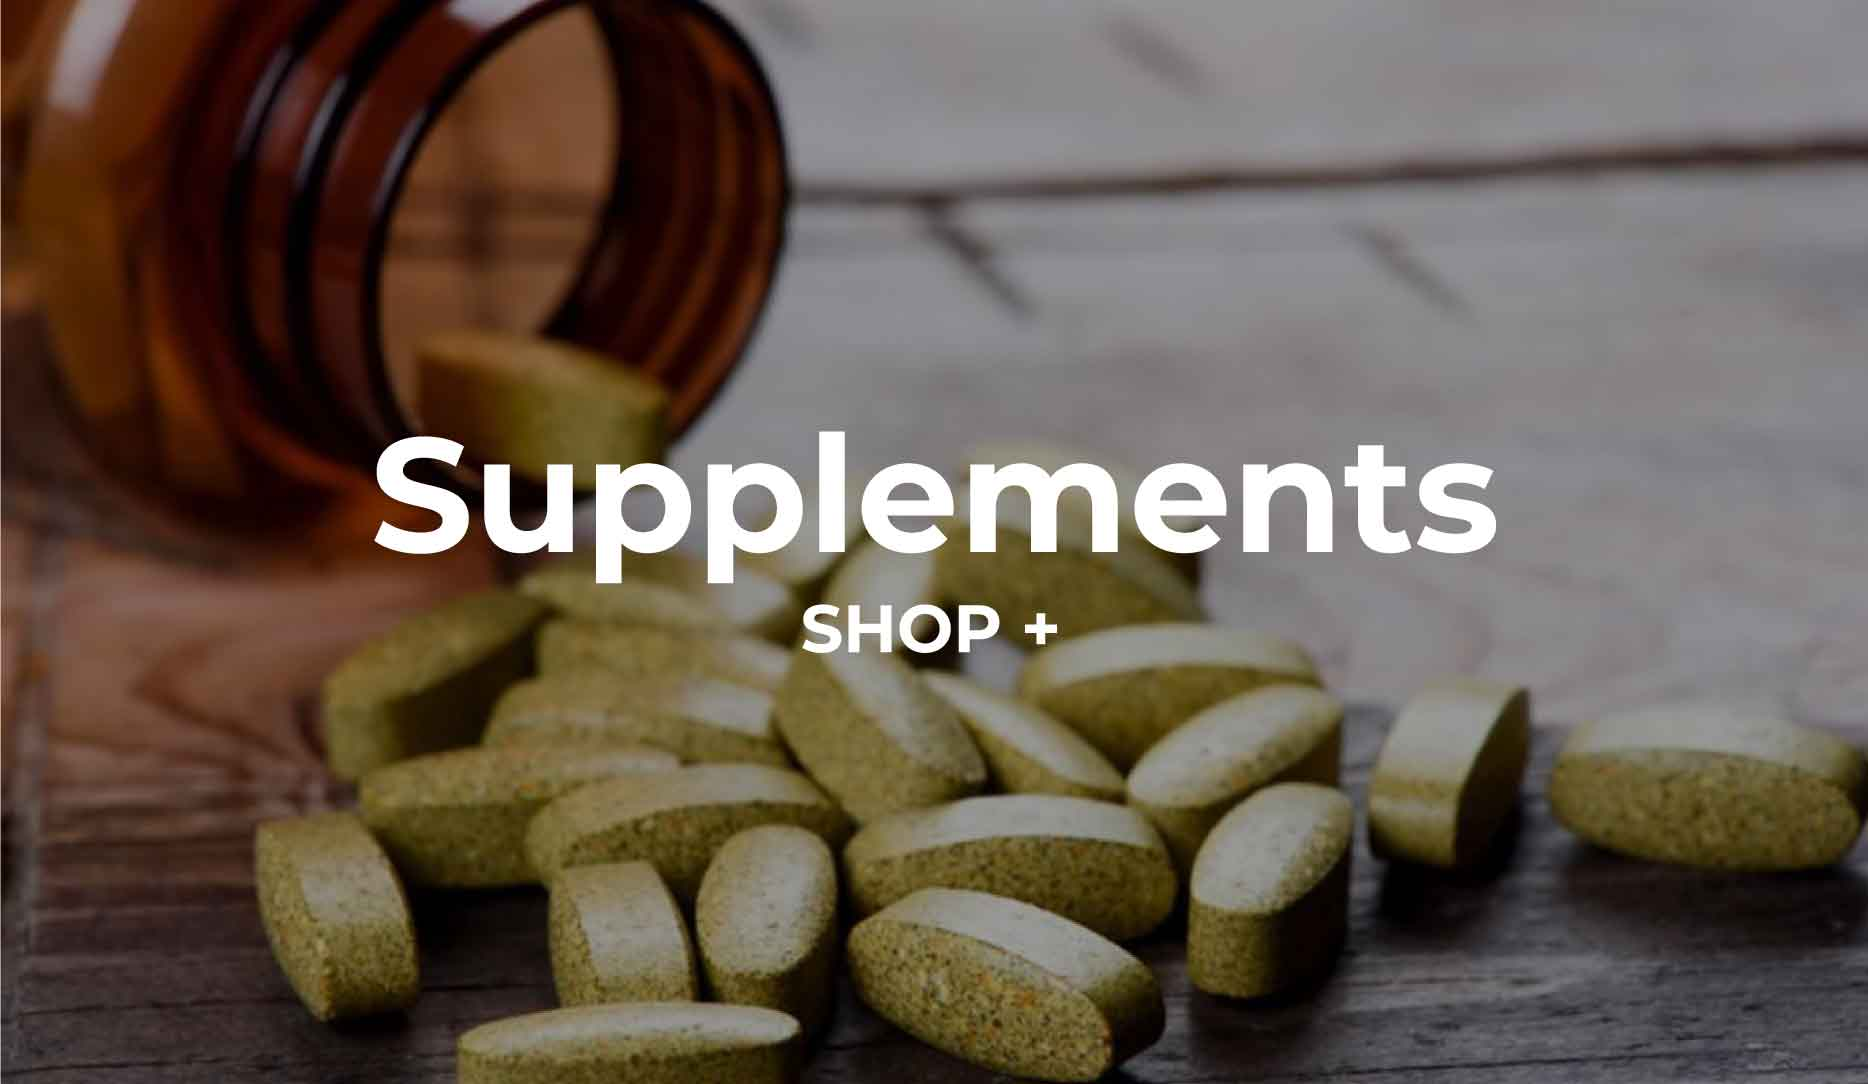 Shop supplements